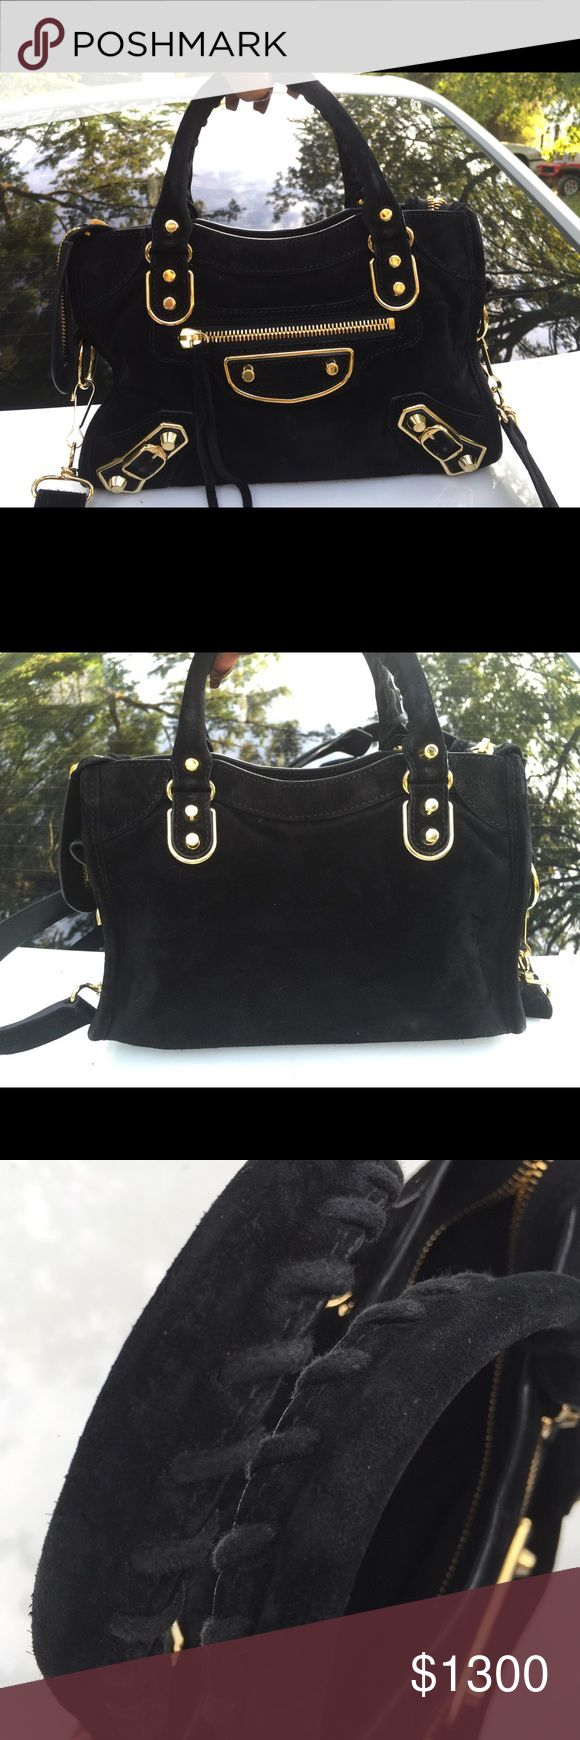 Balenciaga metallic edge mini city Black suede gold hardware. Purchased this bag from barneys New York two months ago (July 2016) for $1593.00.  I have proof of purchase, receipts and can provide additional pictures per request. Previously loved but very little signs of wear and still very new (2 months new). 100% authentic. Comes with dust bag and extra material patch, mirror and long strap Included. Will go lower through pay pal, I prefer to sell but I may be willing to trade for another…